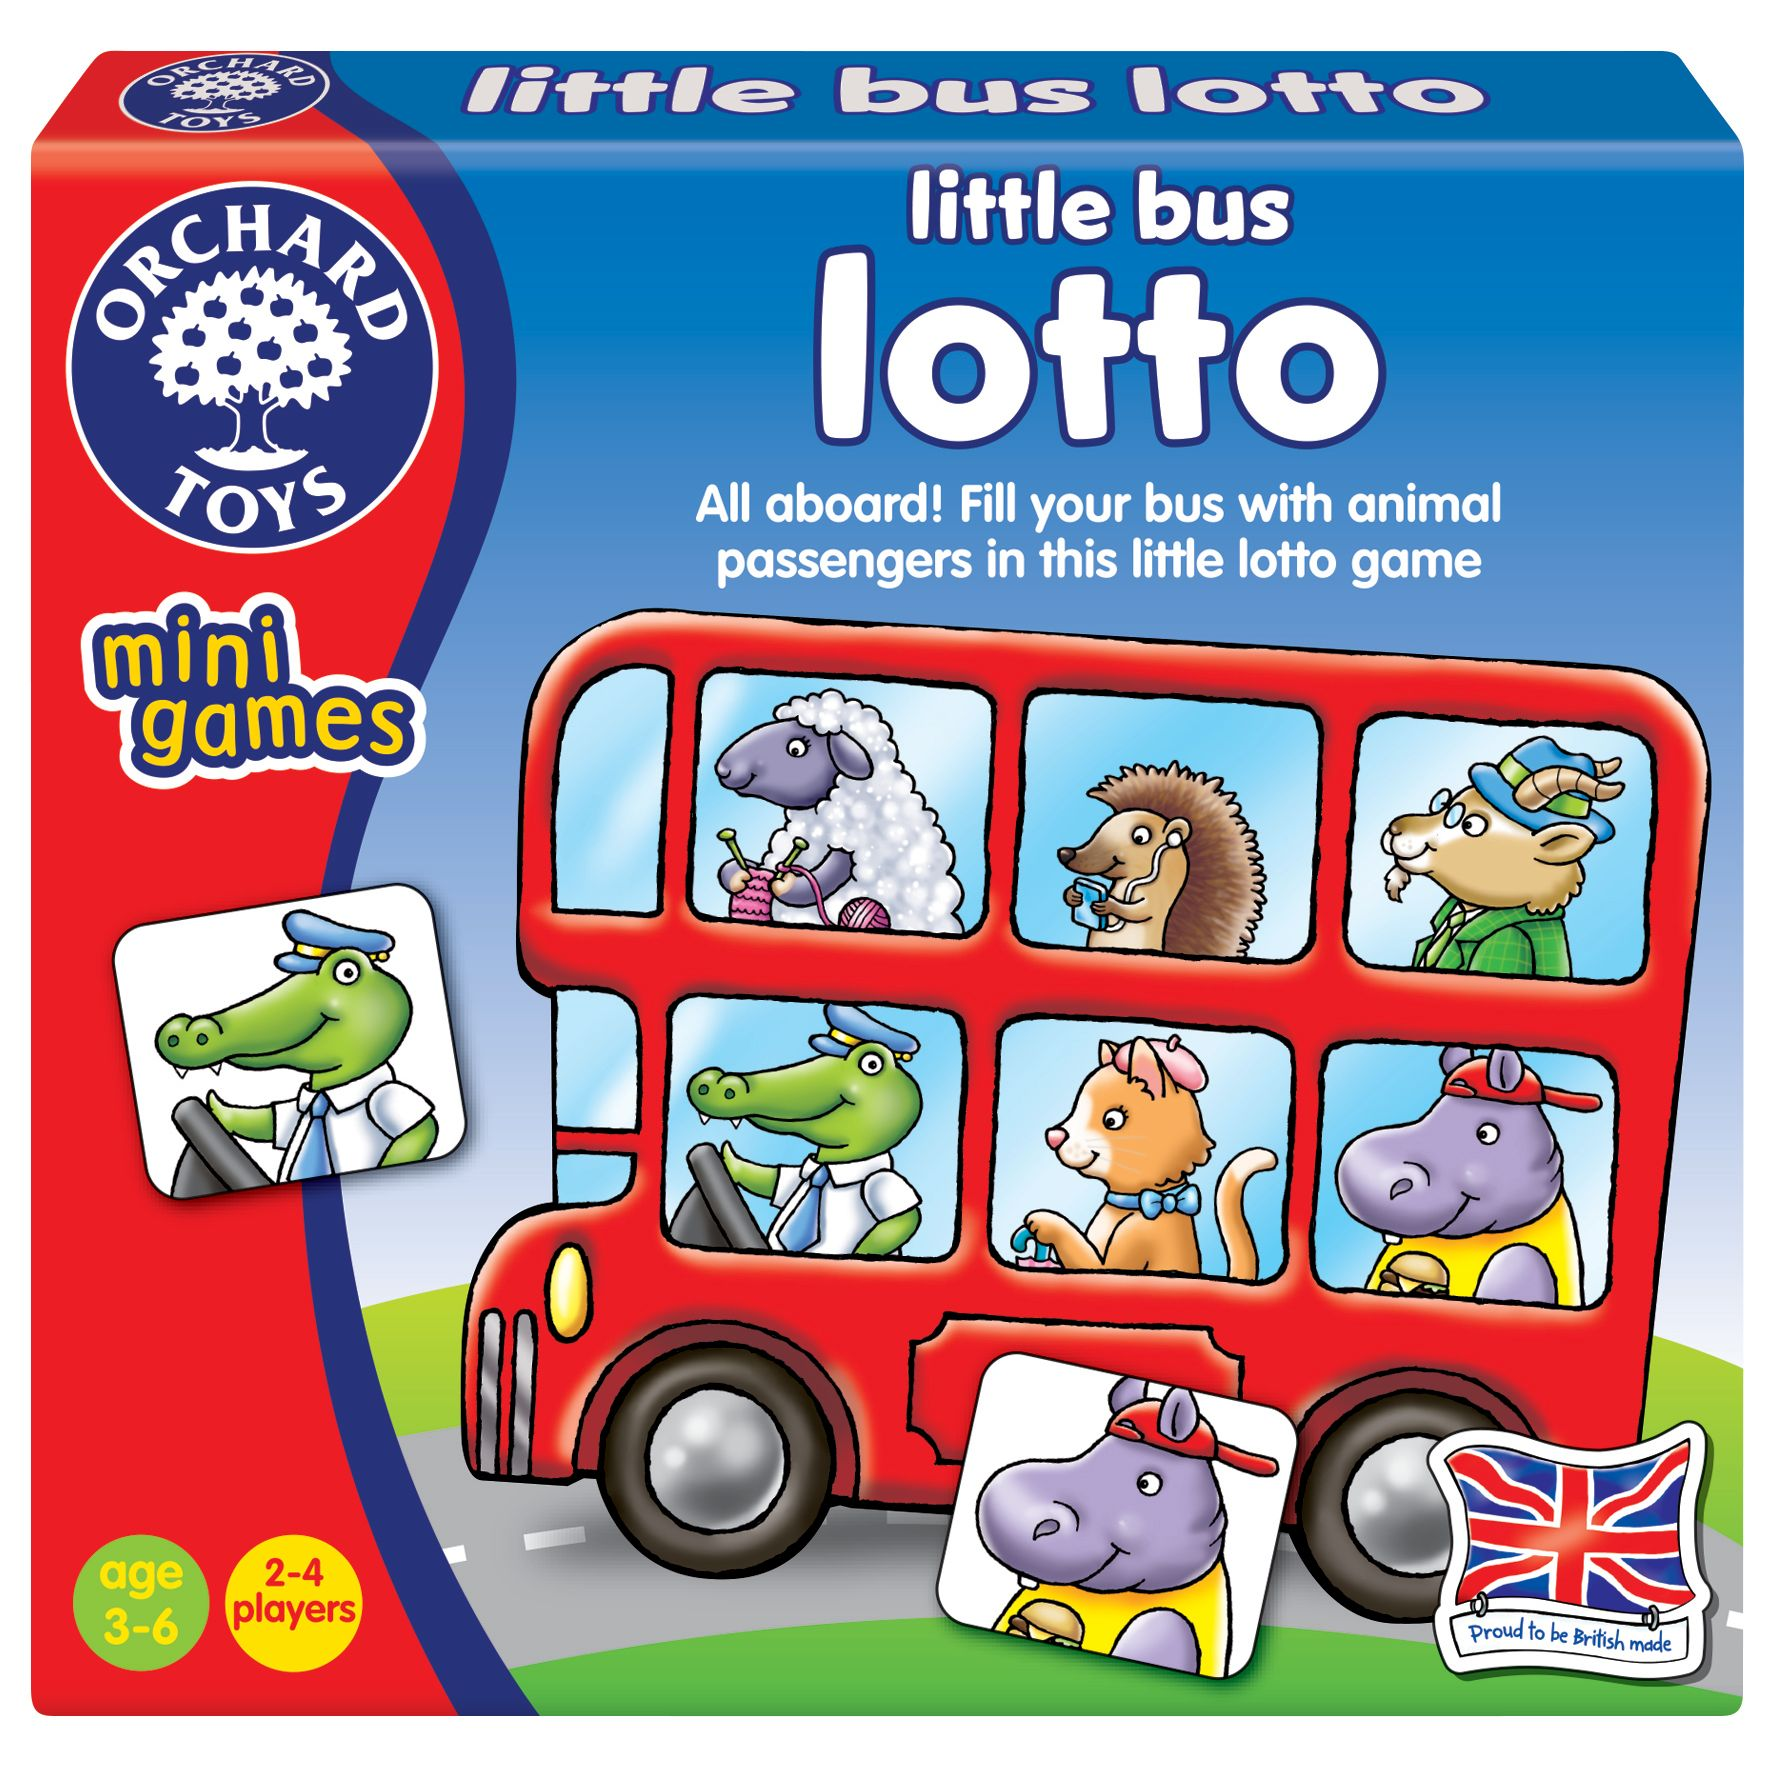 Orchard Toys Orchard Toys Little Bus Lotto Game